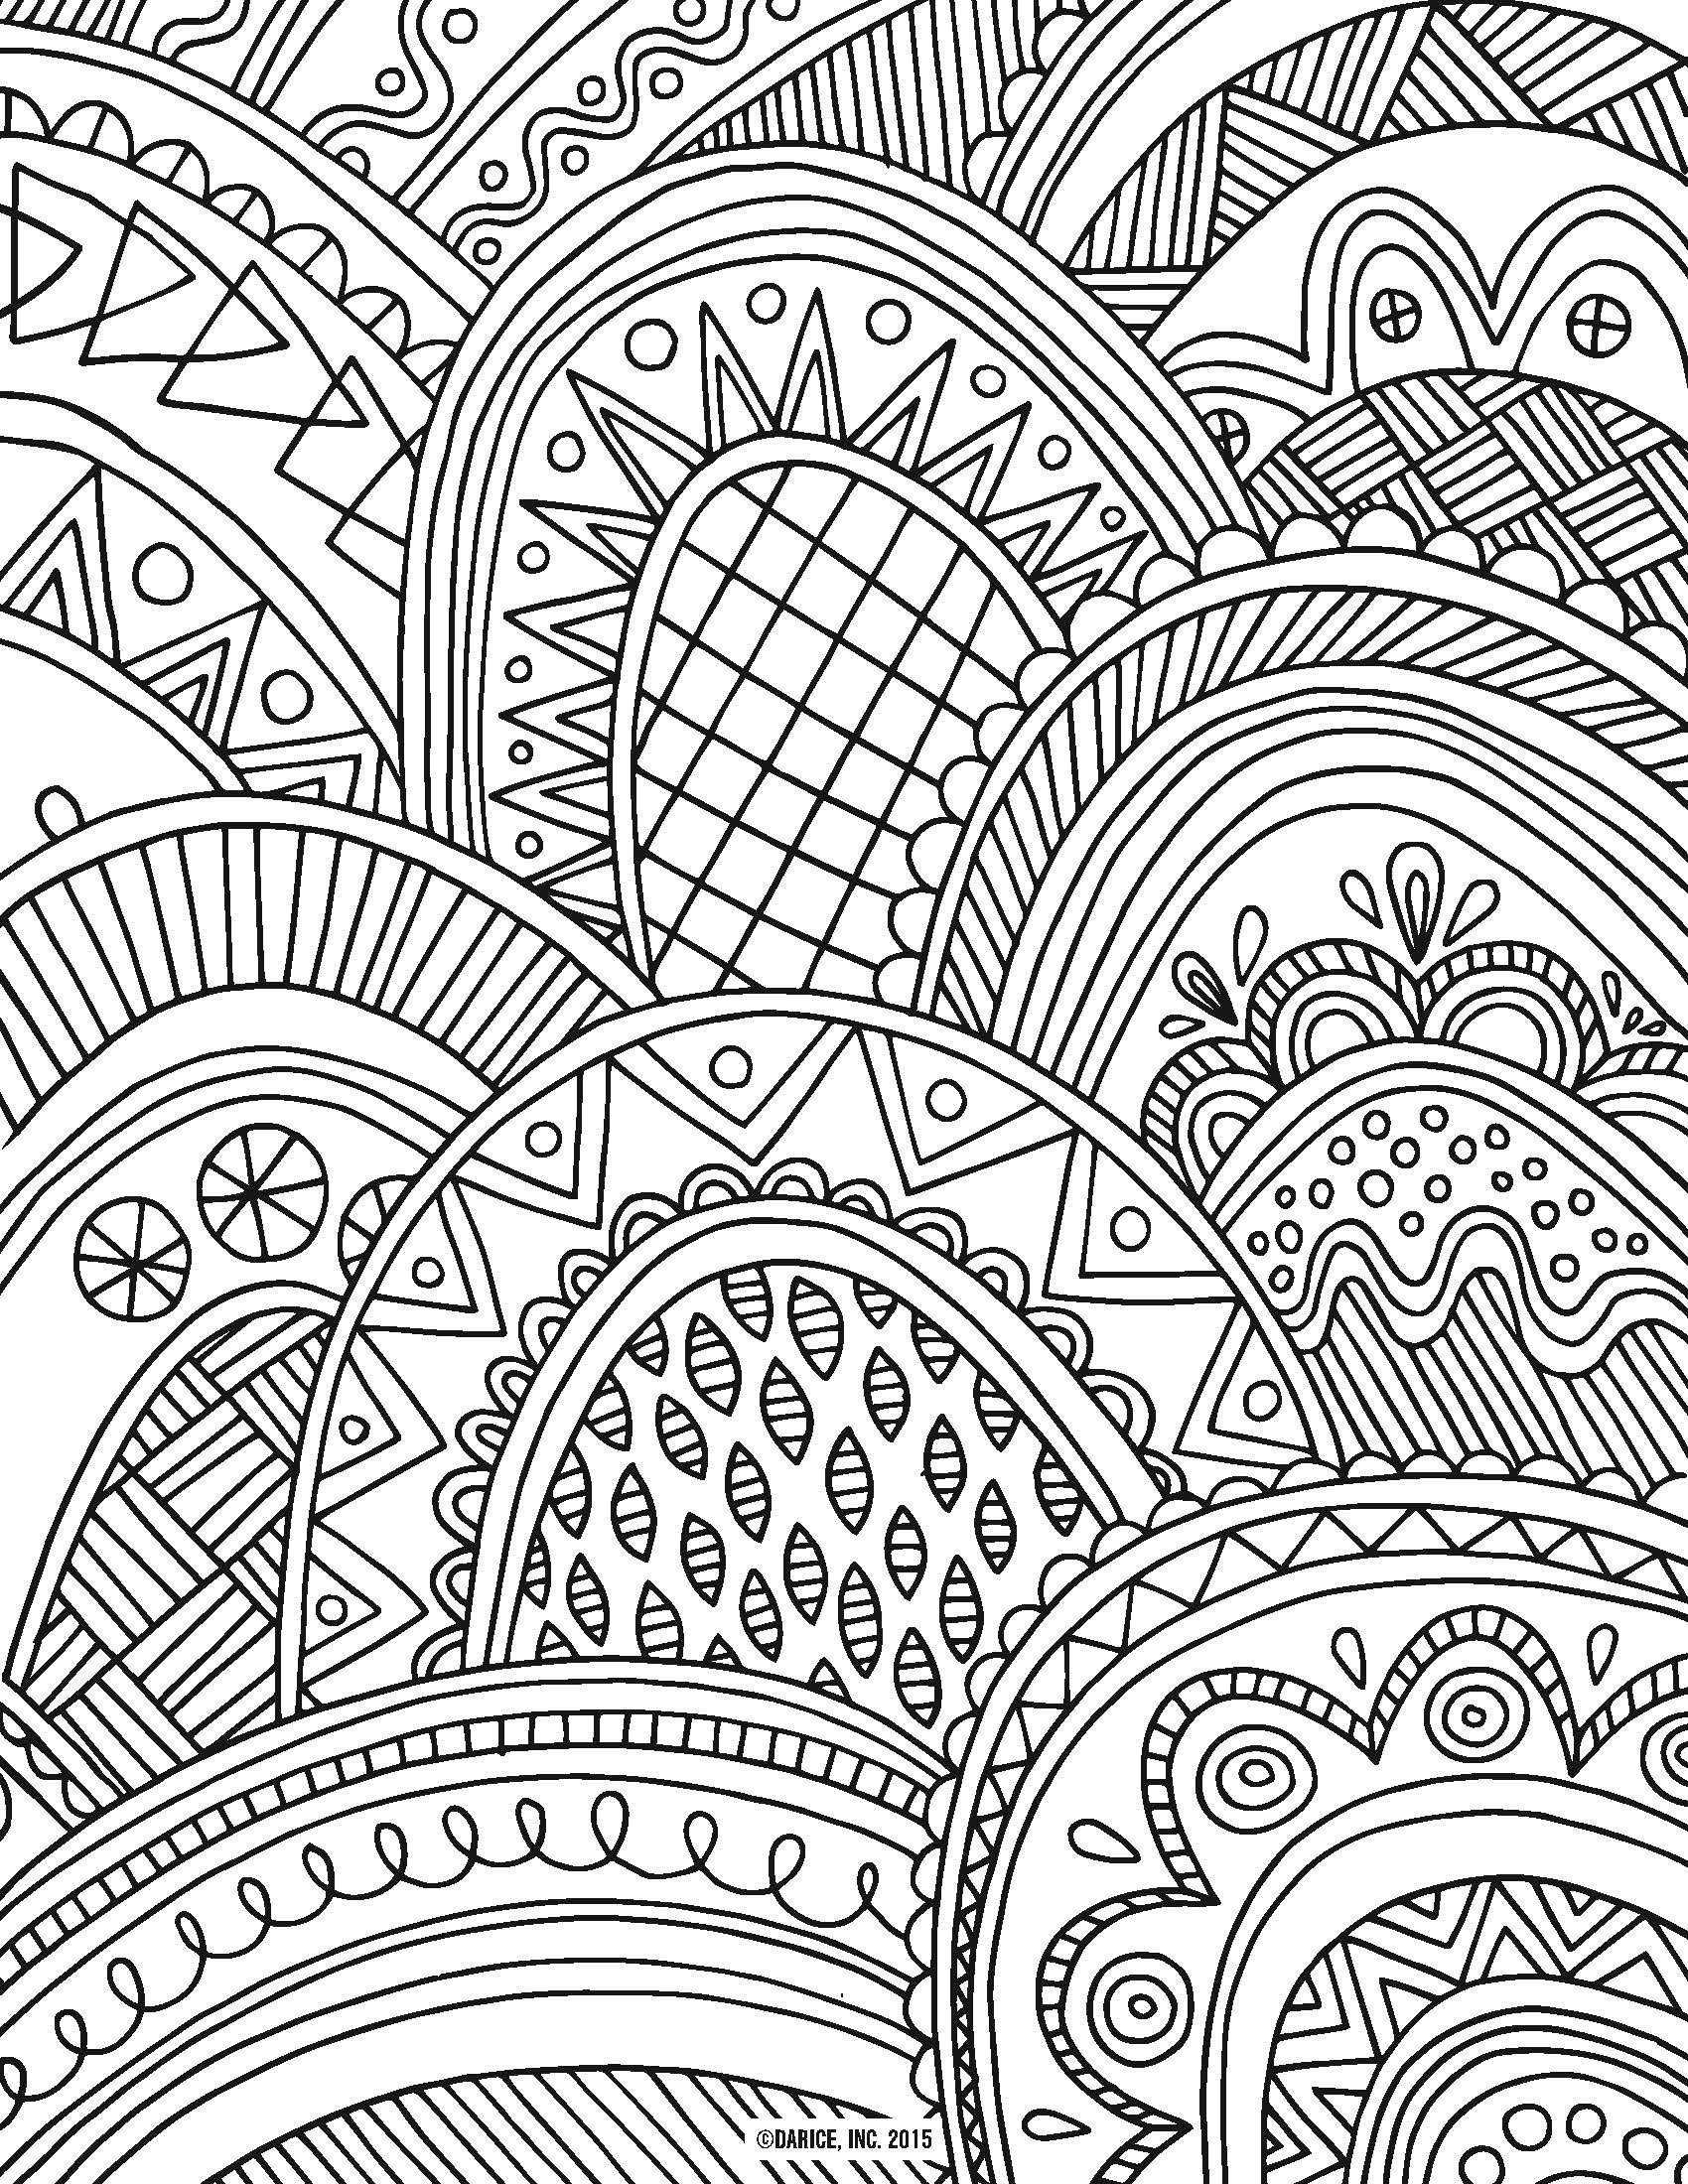 free coloring pages online free colouring pages coloring pages online free